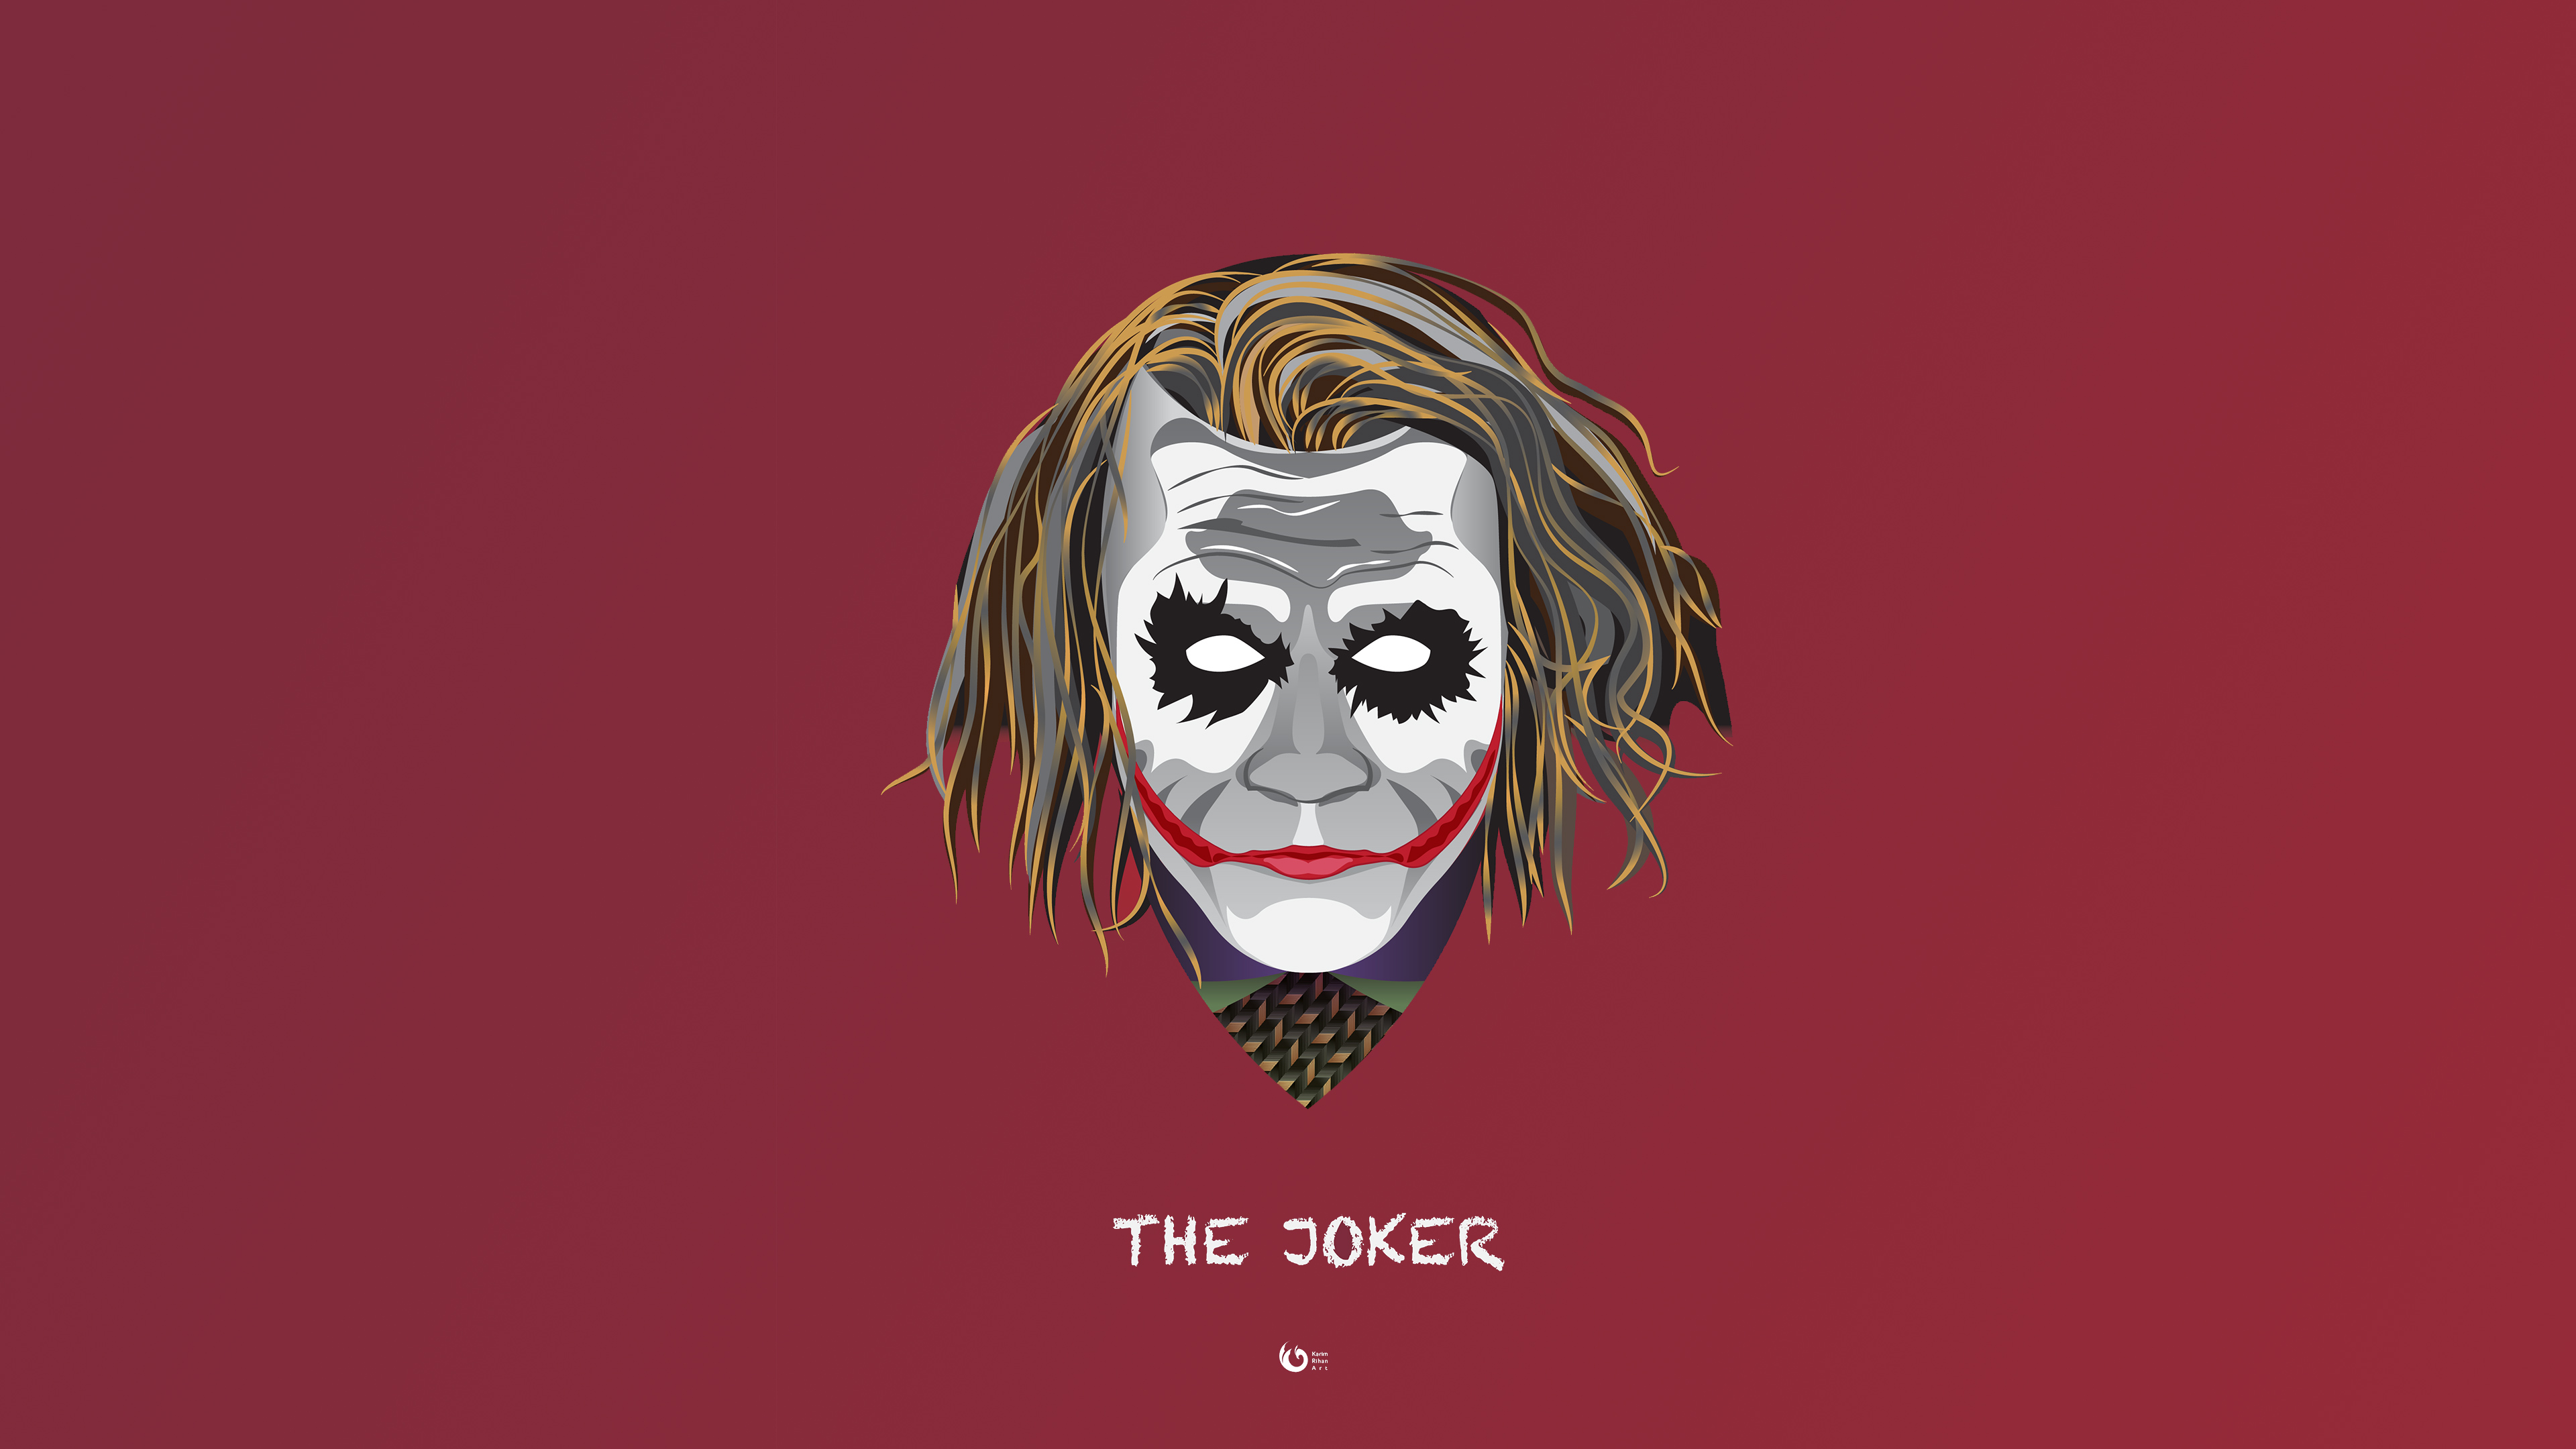 The Joker Full Hd 1080p Fondos De Pantalla